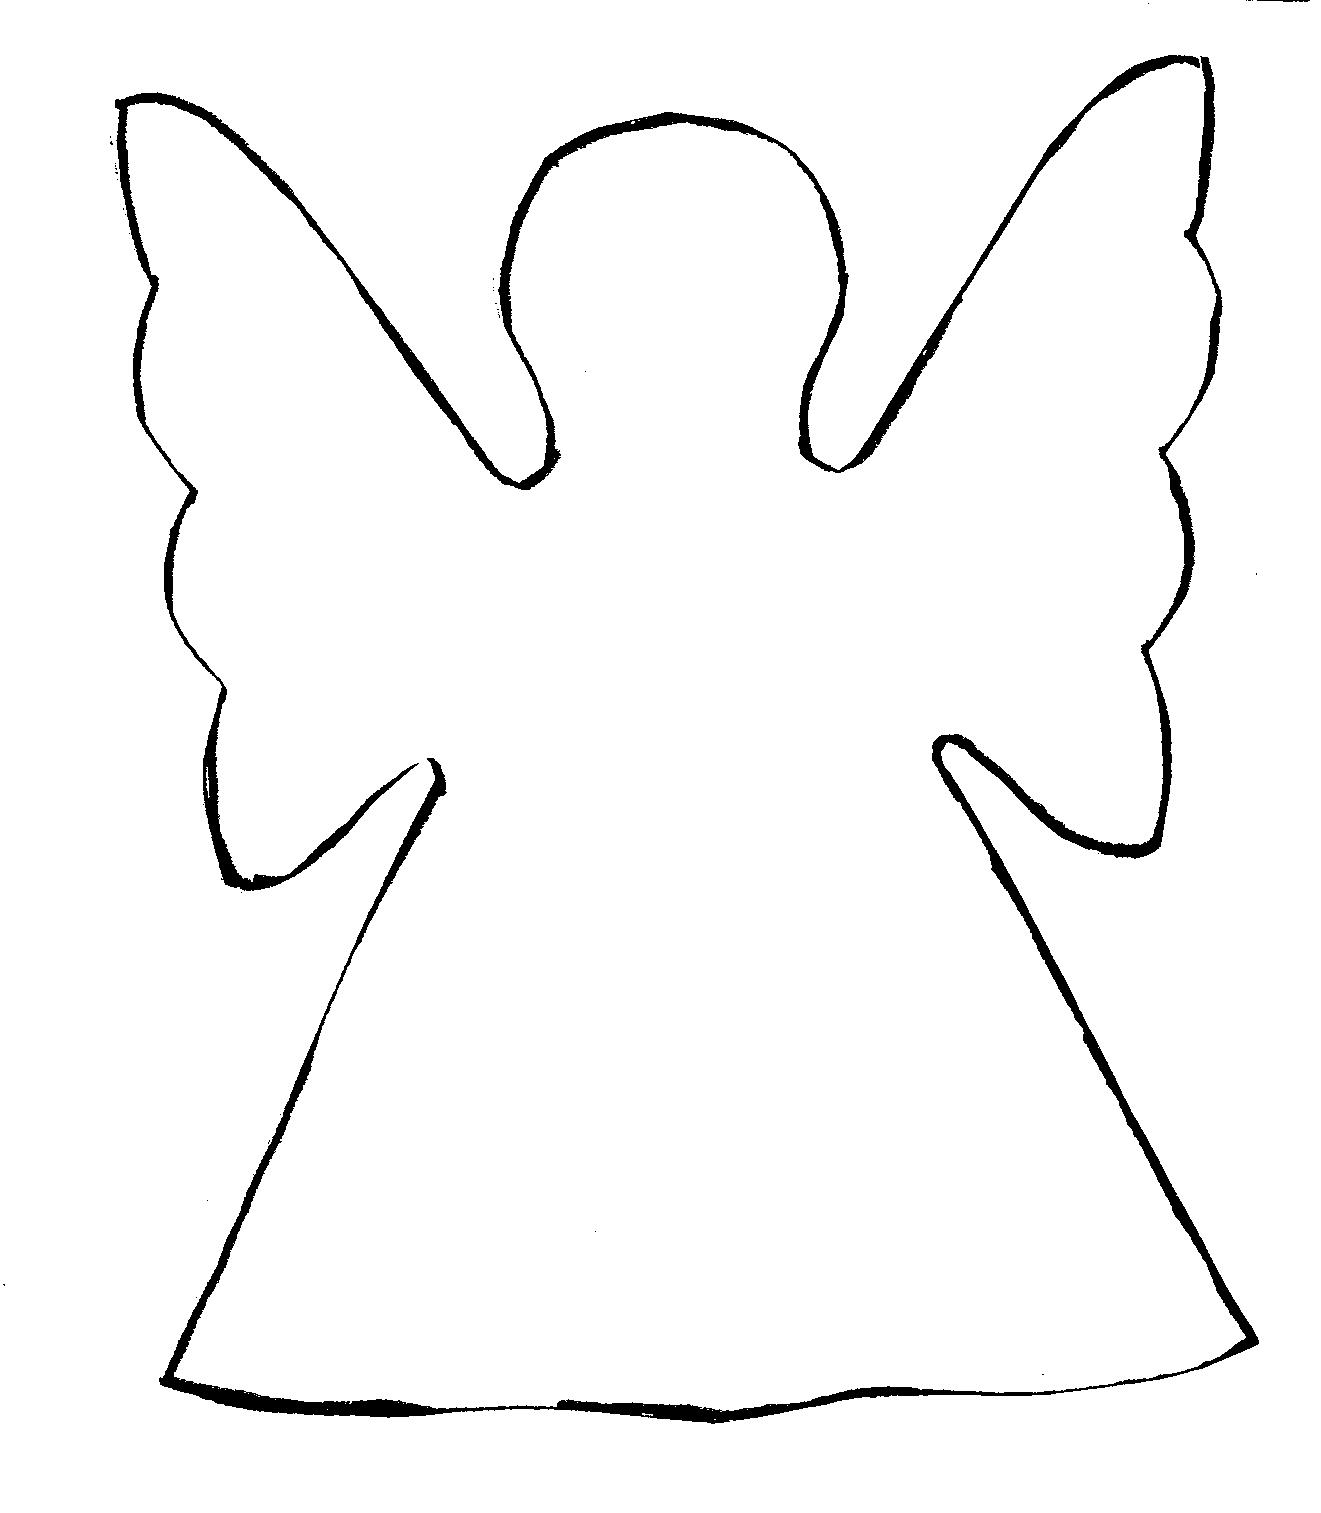 Awesome angel black and. Angels clipart outline